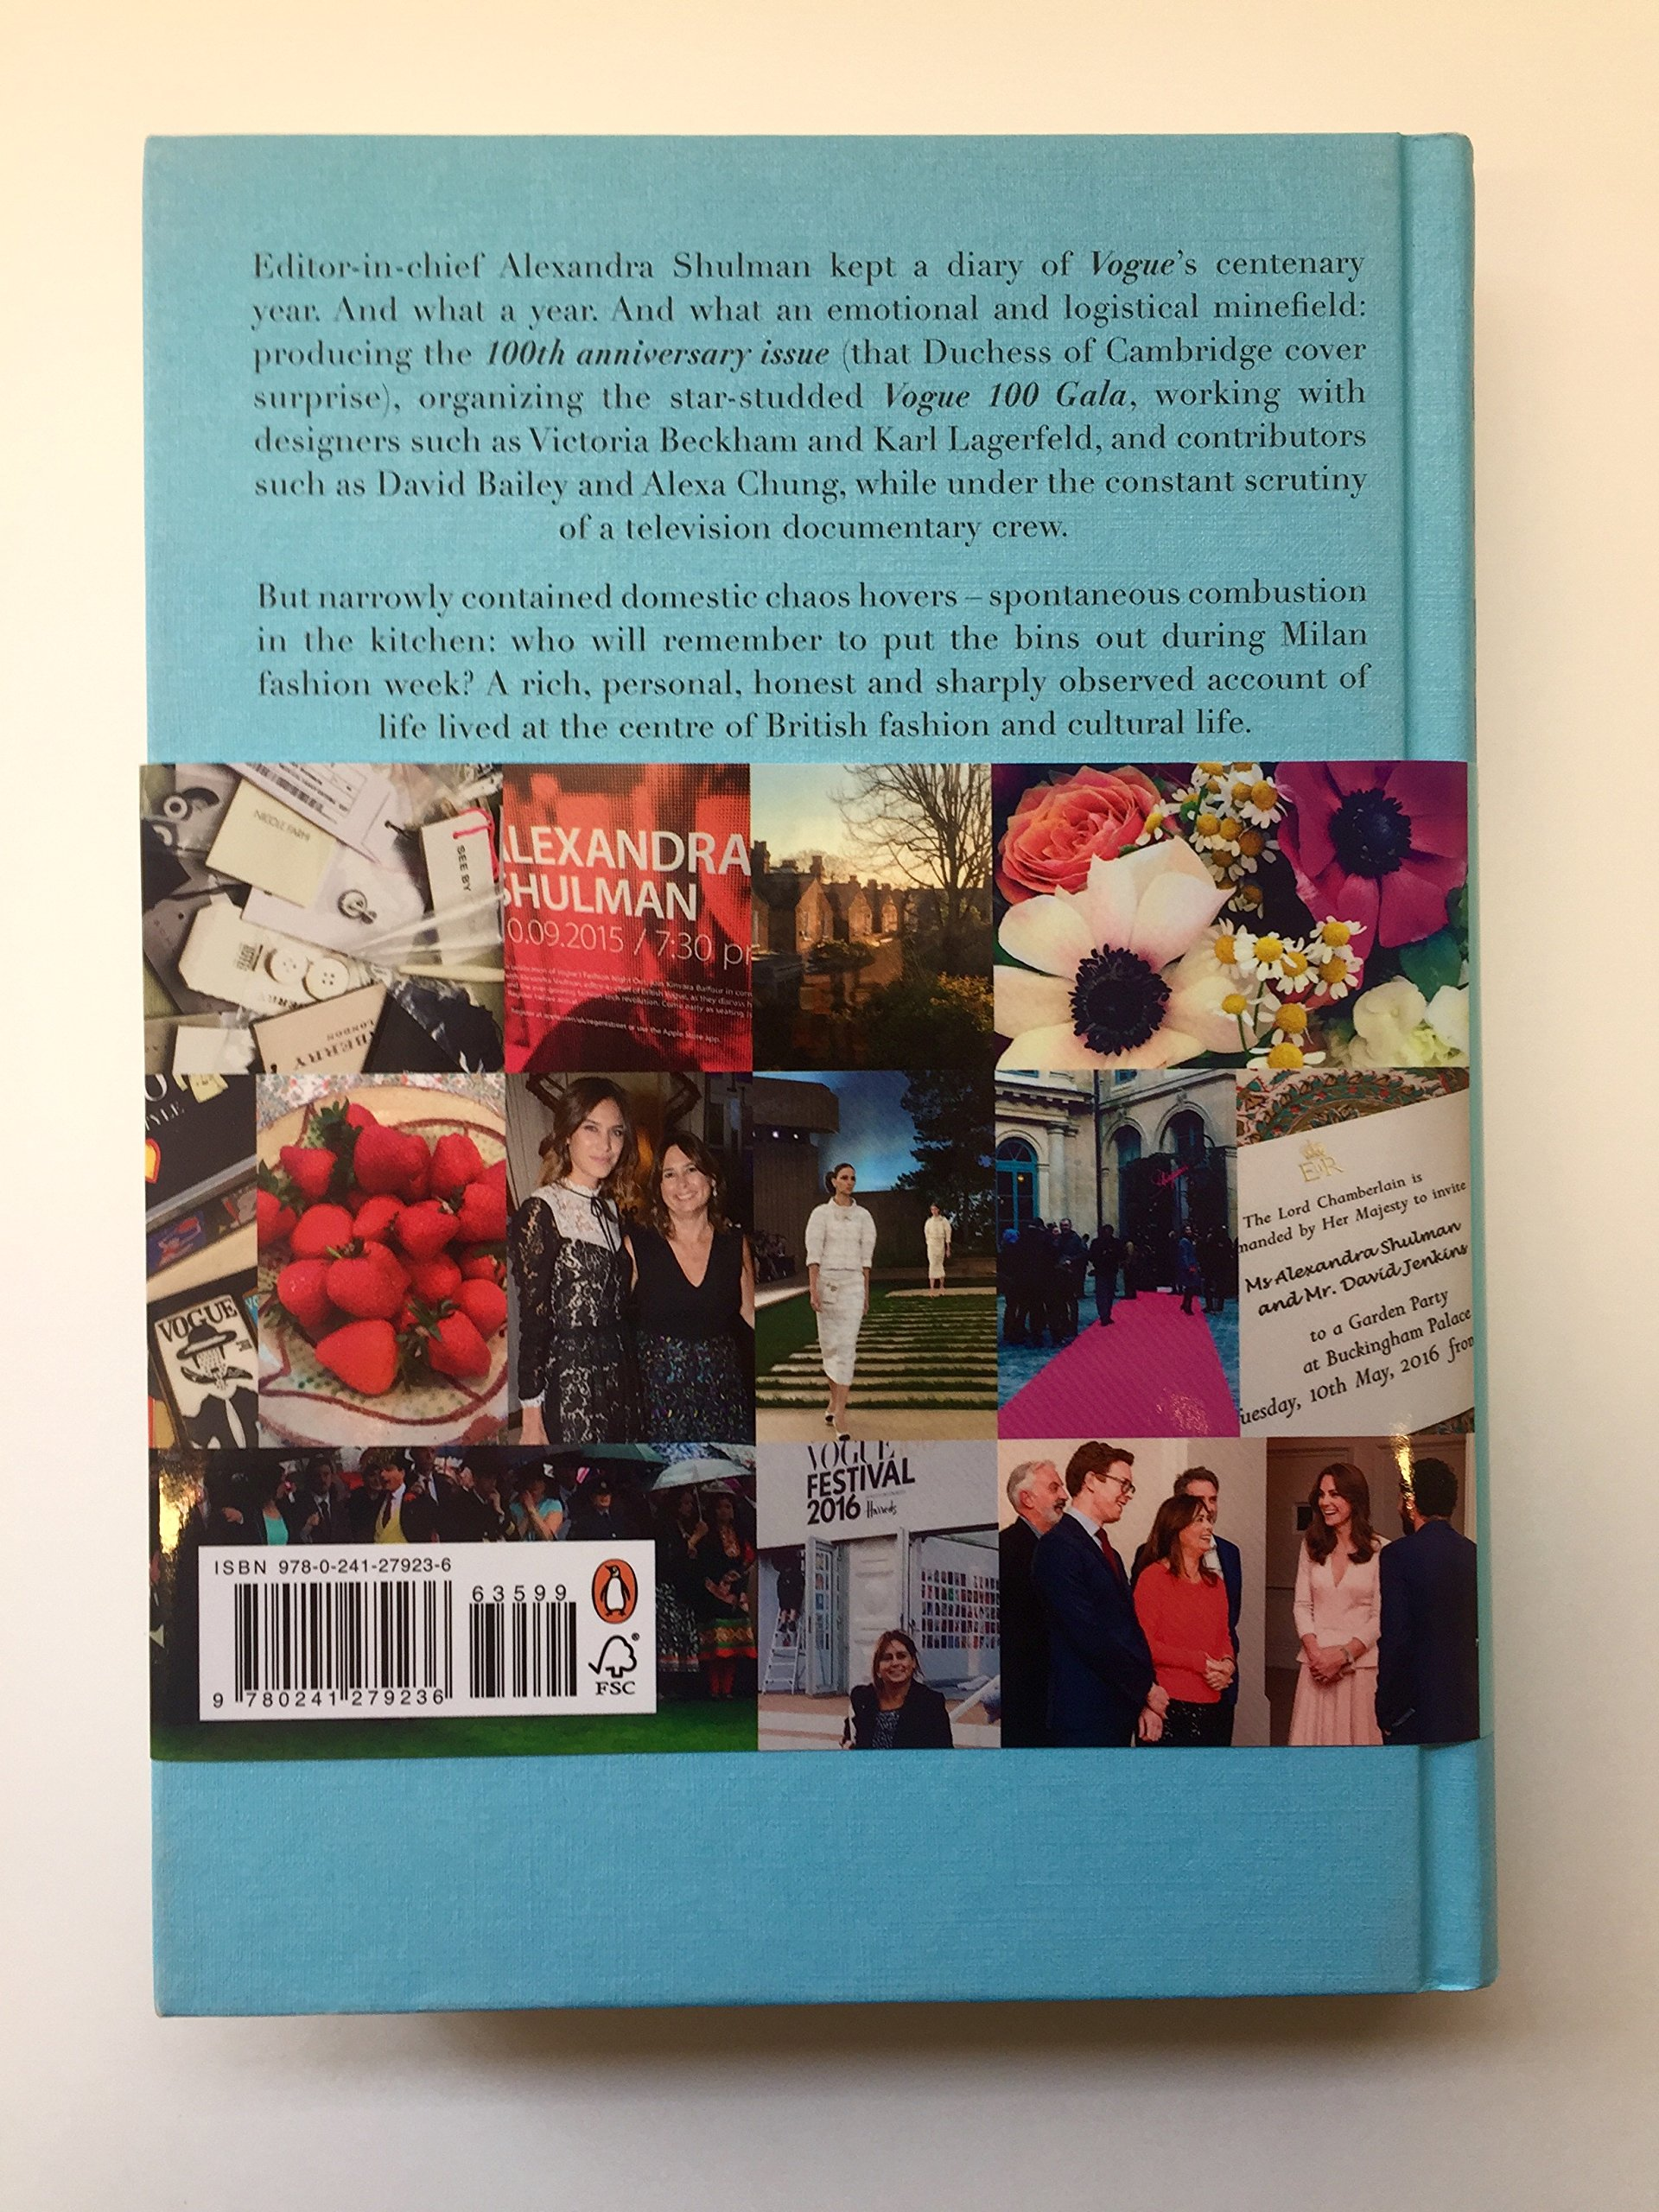 Inside vogue: a diary of my 100th year: amazon.co.uk: alexandra ...